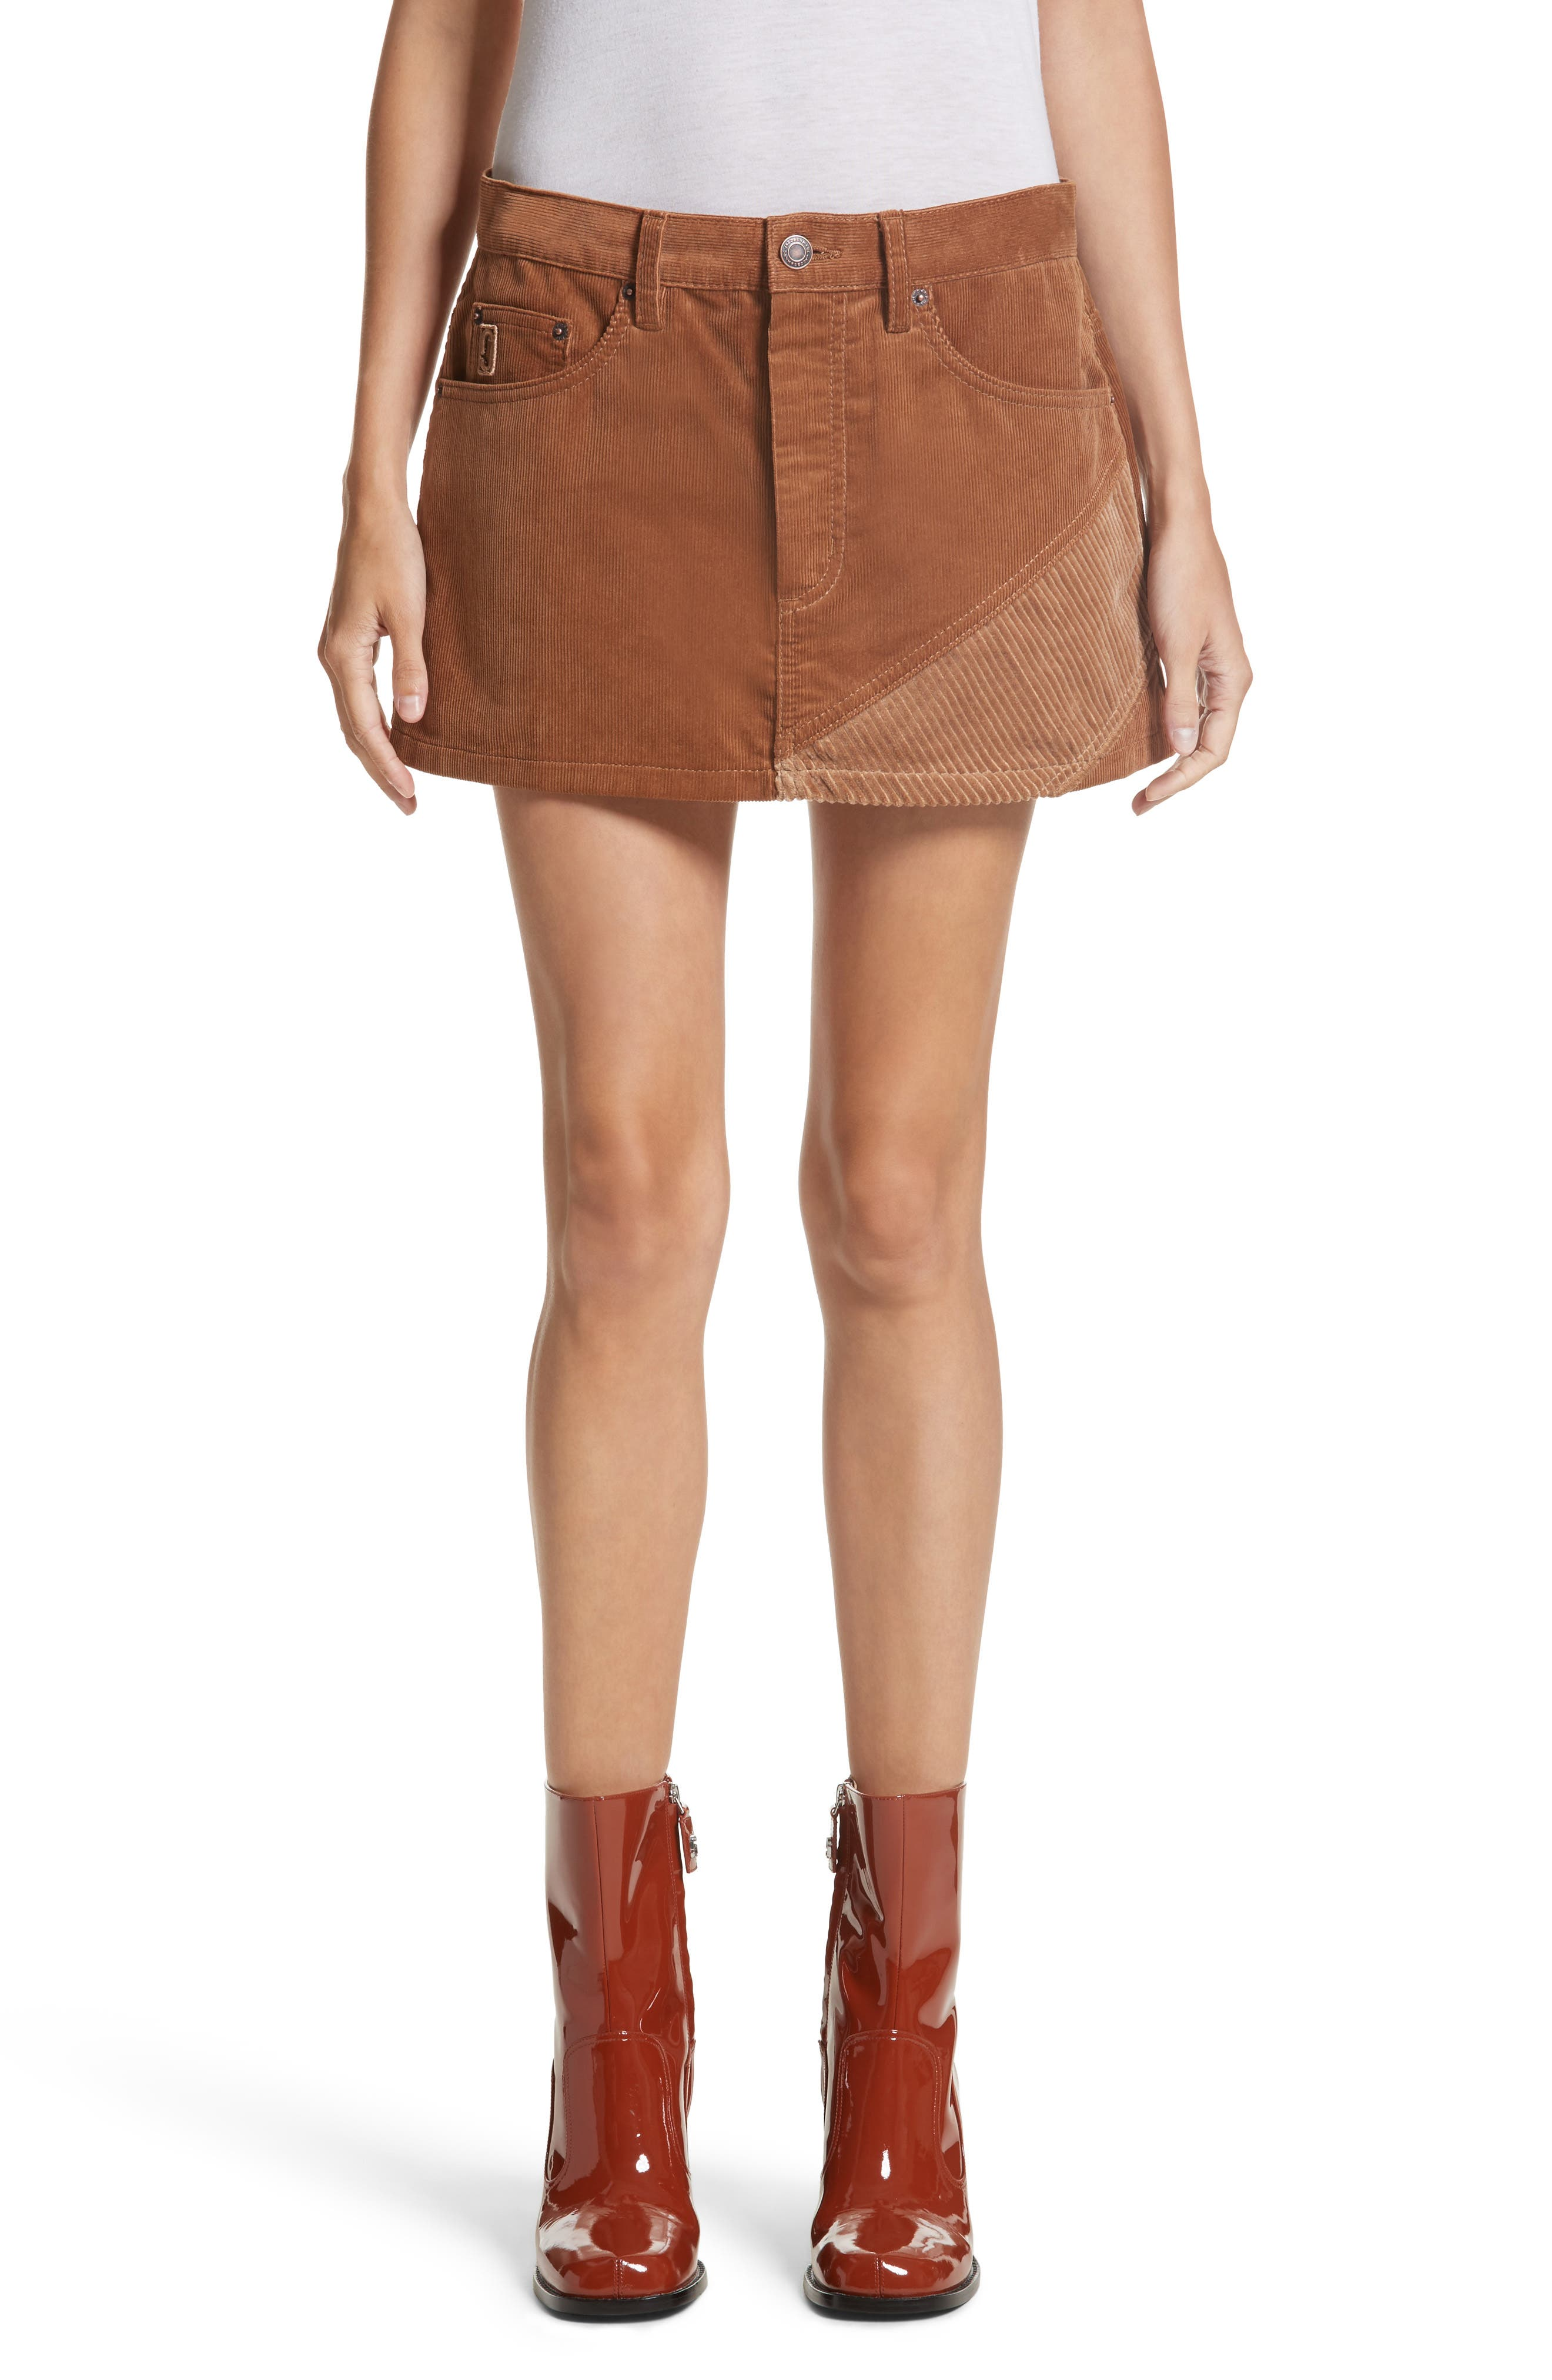 Alternate Image 1 Selected - MARC JACOBS Corduroy Miniskirt